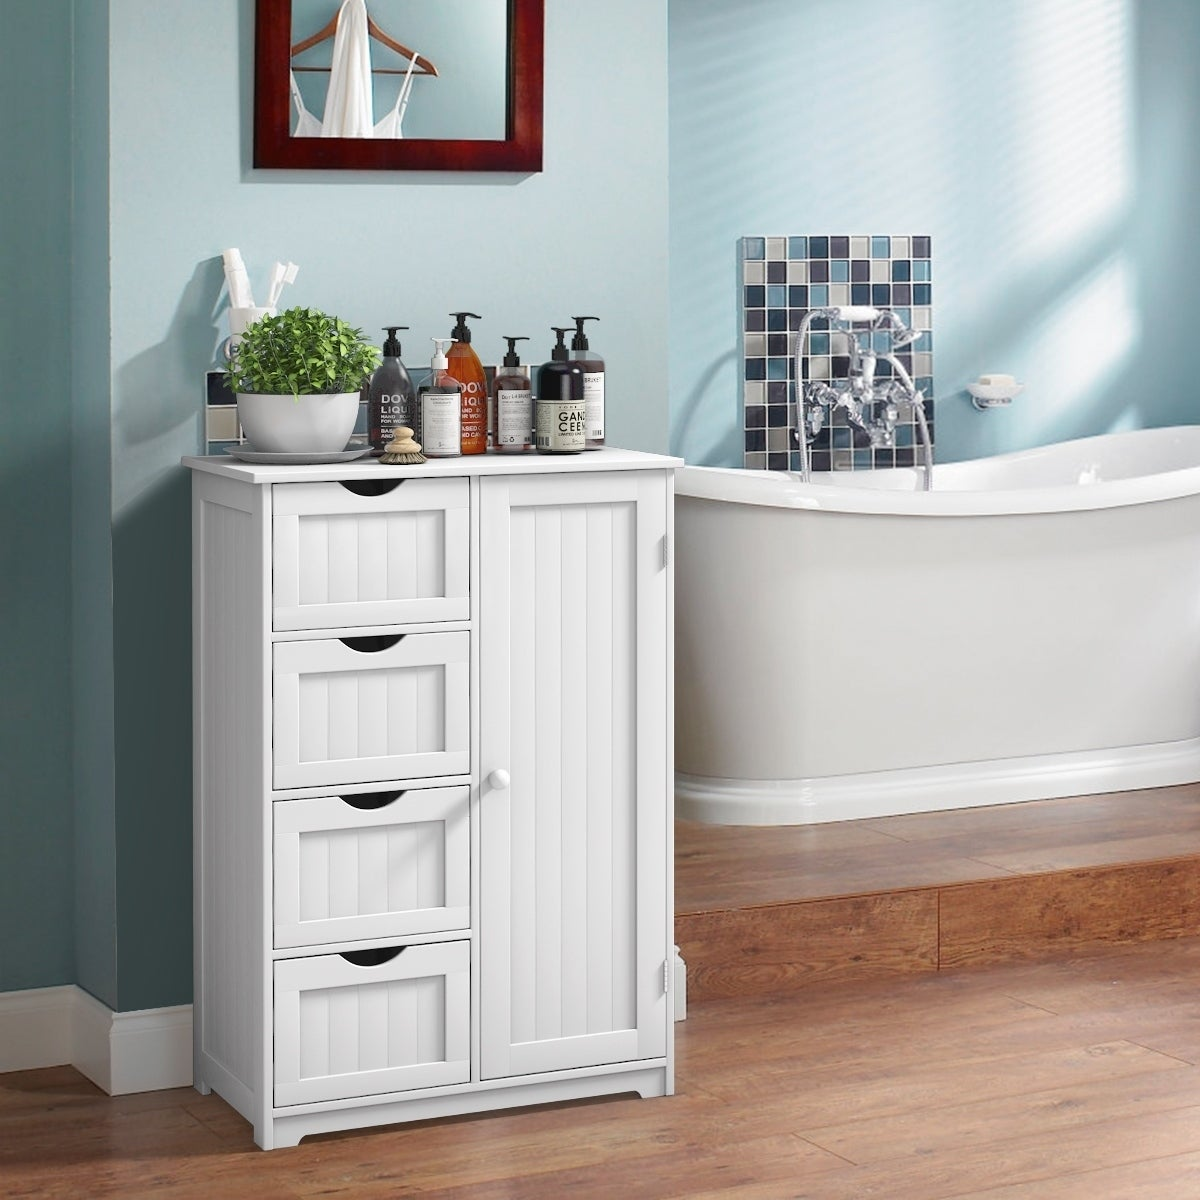 11-Drawer White Wooden Bathroom Cabinet Free Standing Cupboard